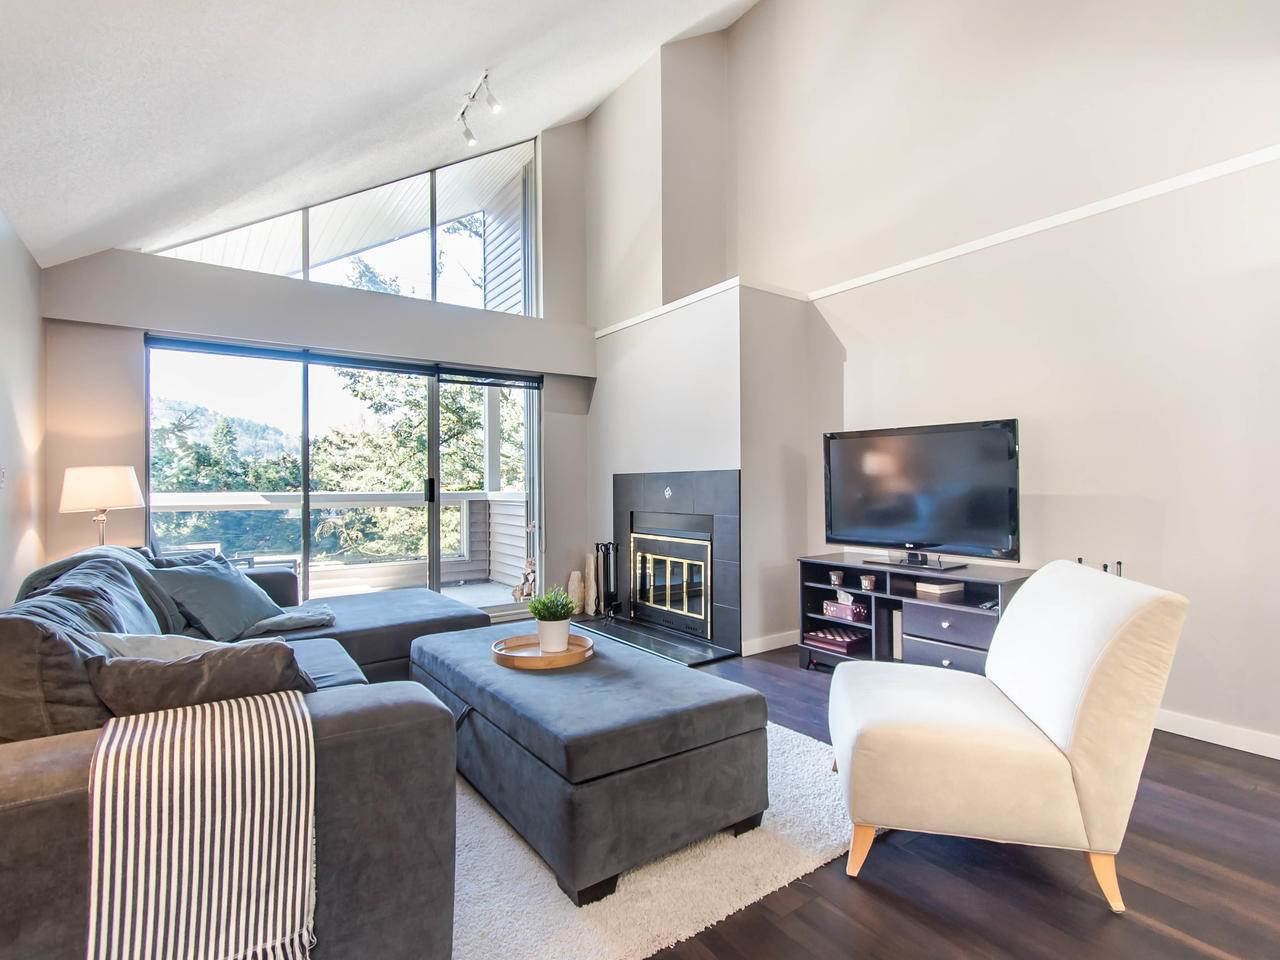 """Main Photo: 307 932 ROBINSON Street in Coquitlam: Coquitlam West Condo for sale in """"The Shaughnessy"""" : MLS®# R2449657"""